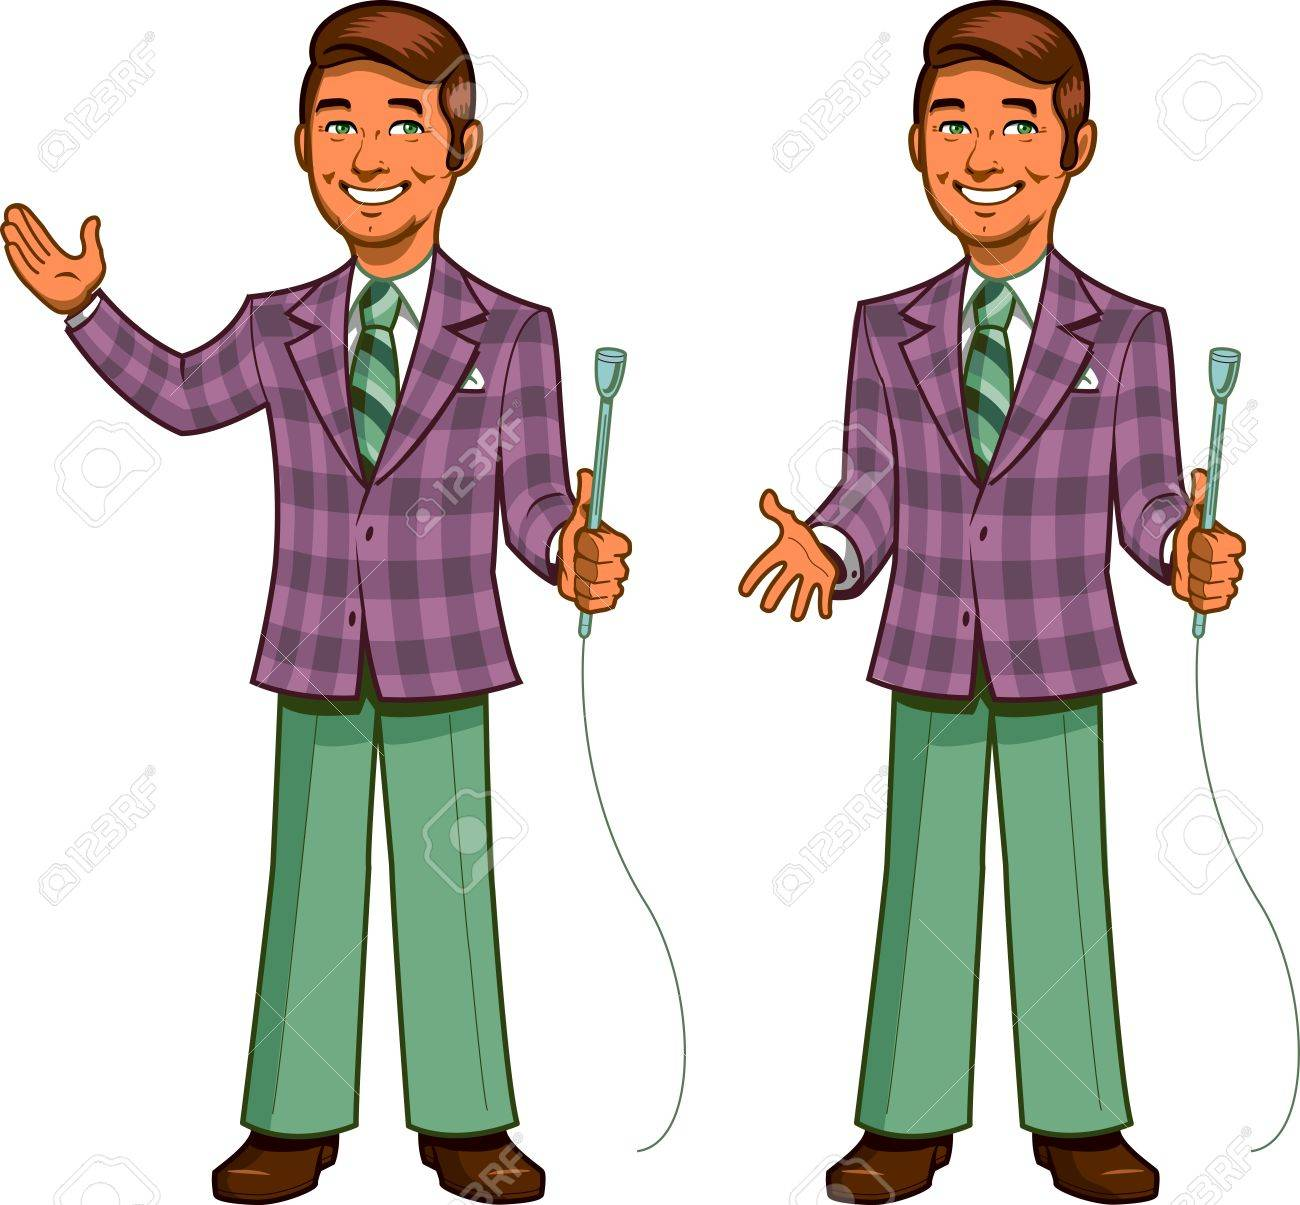 Retro Classic TV Game Show Host with Cheesy Smile and Plaid Jacket, in Two Poses - 20686997